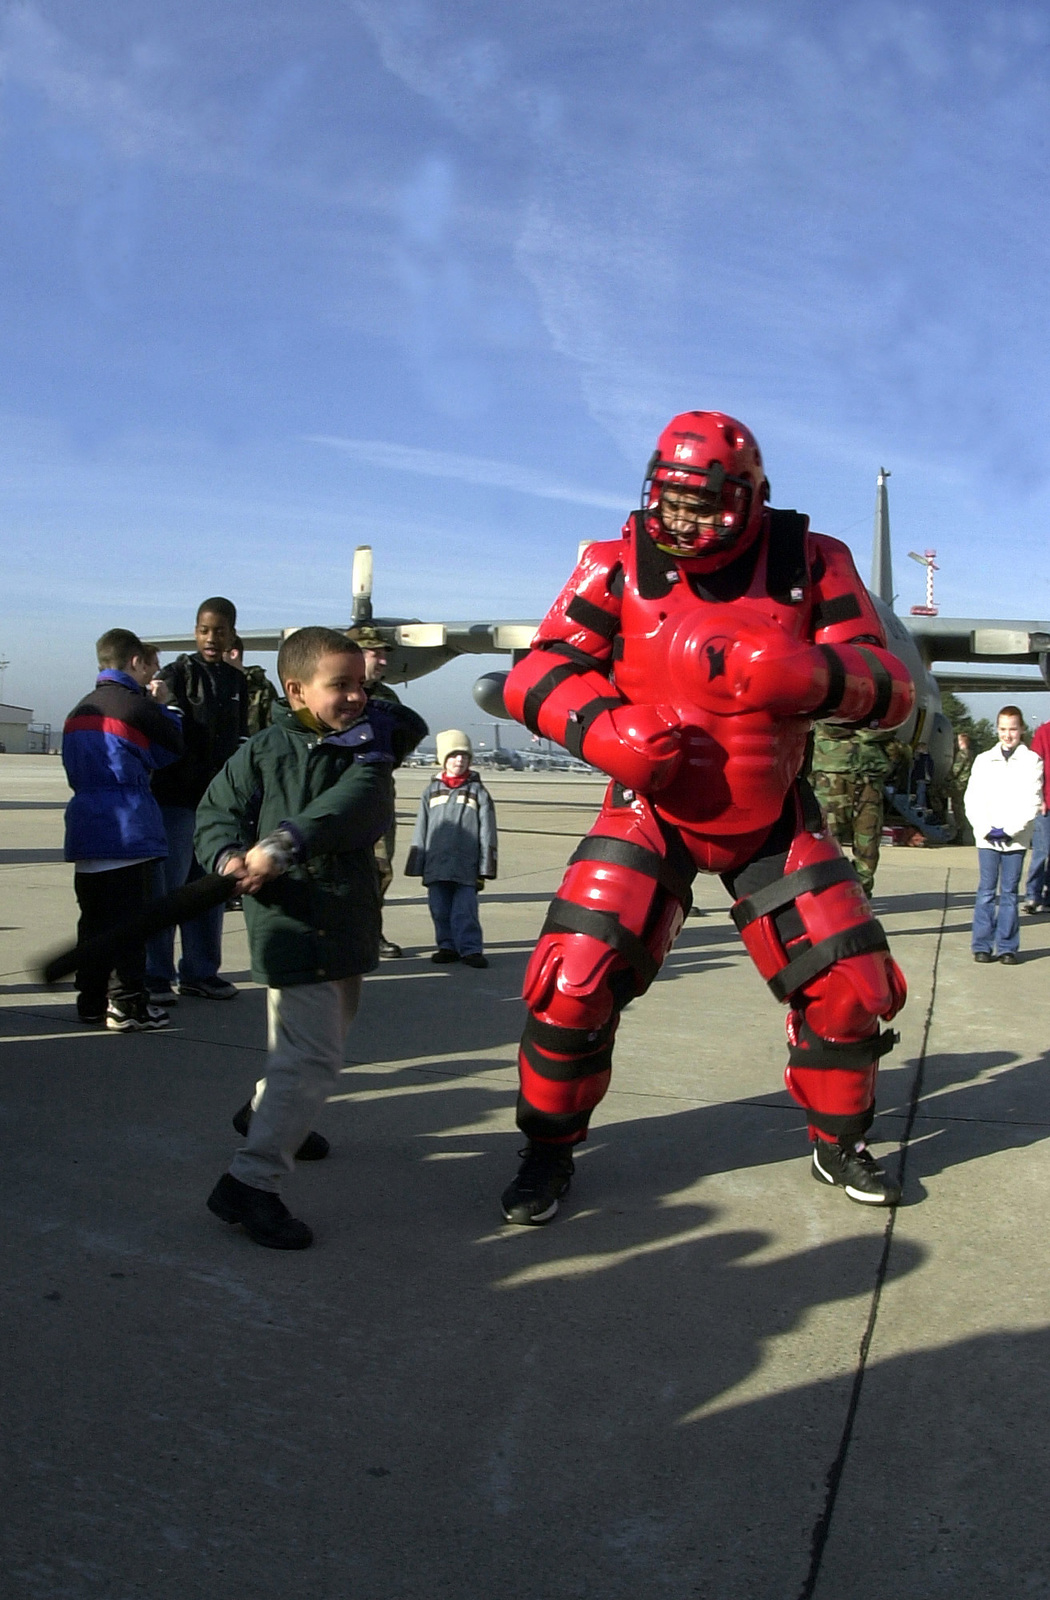 US Air Force (USAF) STAFF Sergeant (SSGT) Duke McDuffie, 786th Security Forces Squadron (SFS), wears a Redman Training Suit, as 6-year old Isaac Johnson takes a good swing at him, during the annual Shadow Day event, at Ramstein Air Base, Germany